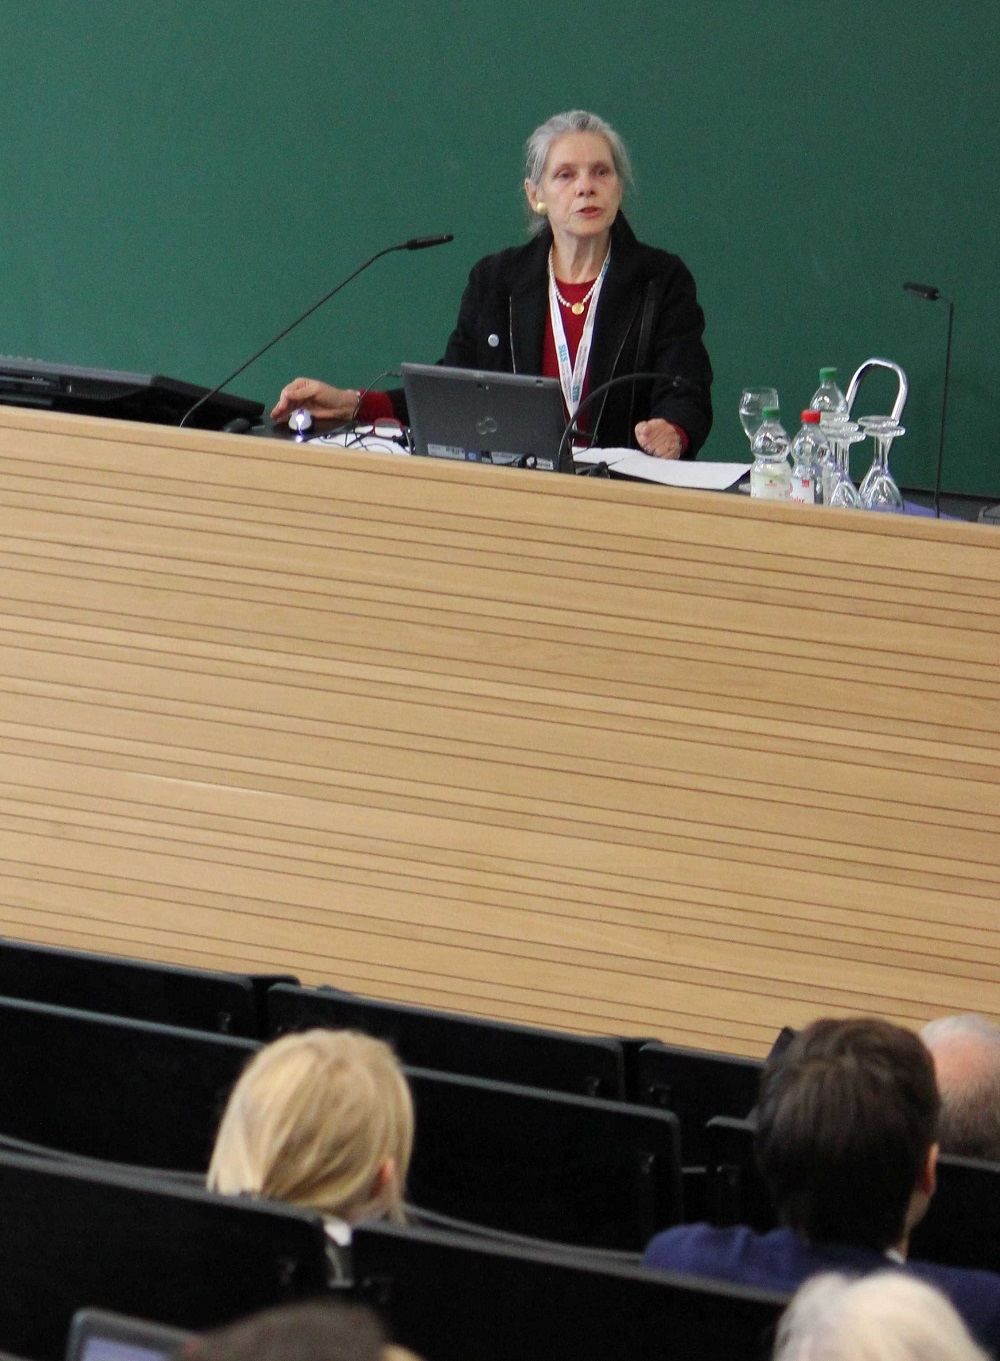 """Prof. Sabine Weinert spoke in her keynote on """"Language and Its Acquisition: Influential Conditions and Impact in Child Development""""."""